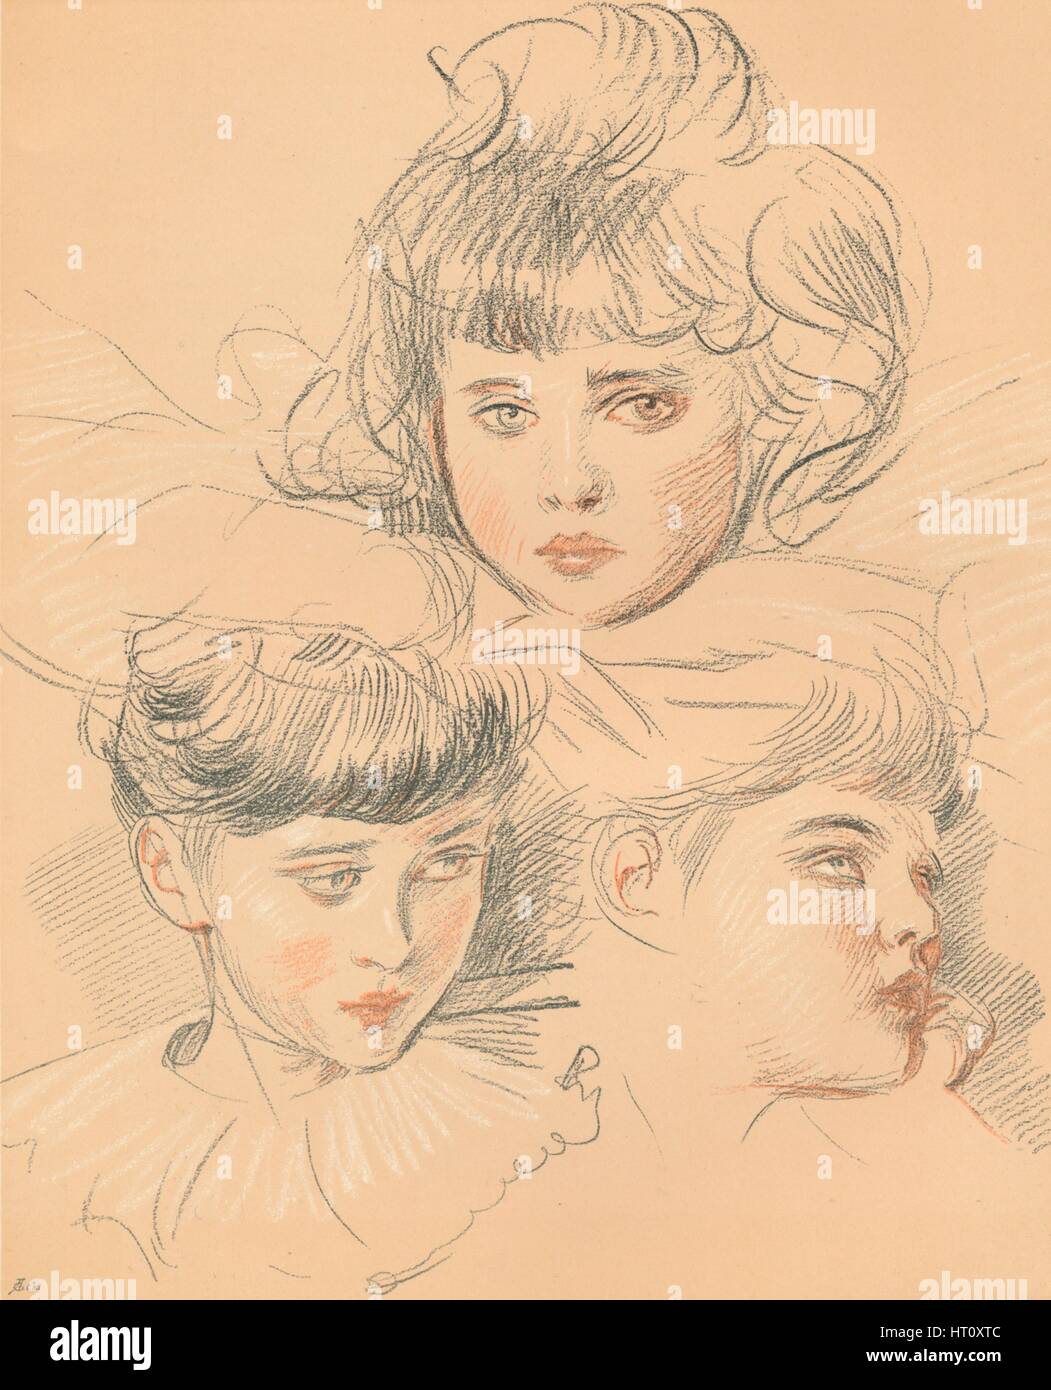 A sketch for a portrait of children, c1897. Artist: Paul Helleu. - Stock Image